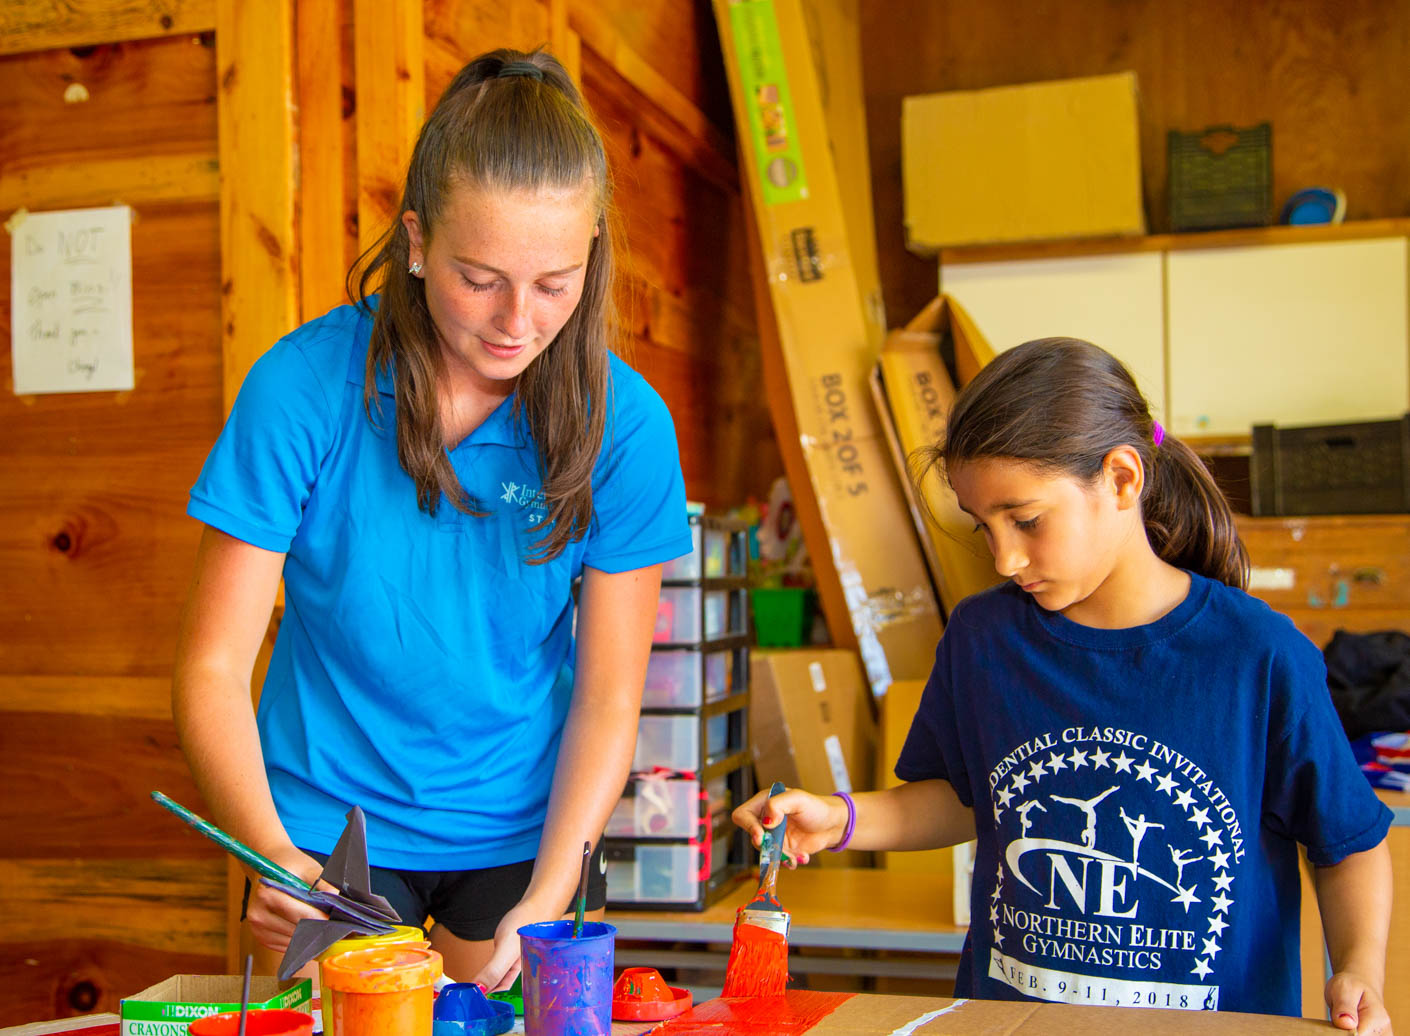 camper and counselor painting